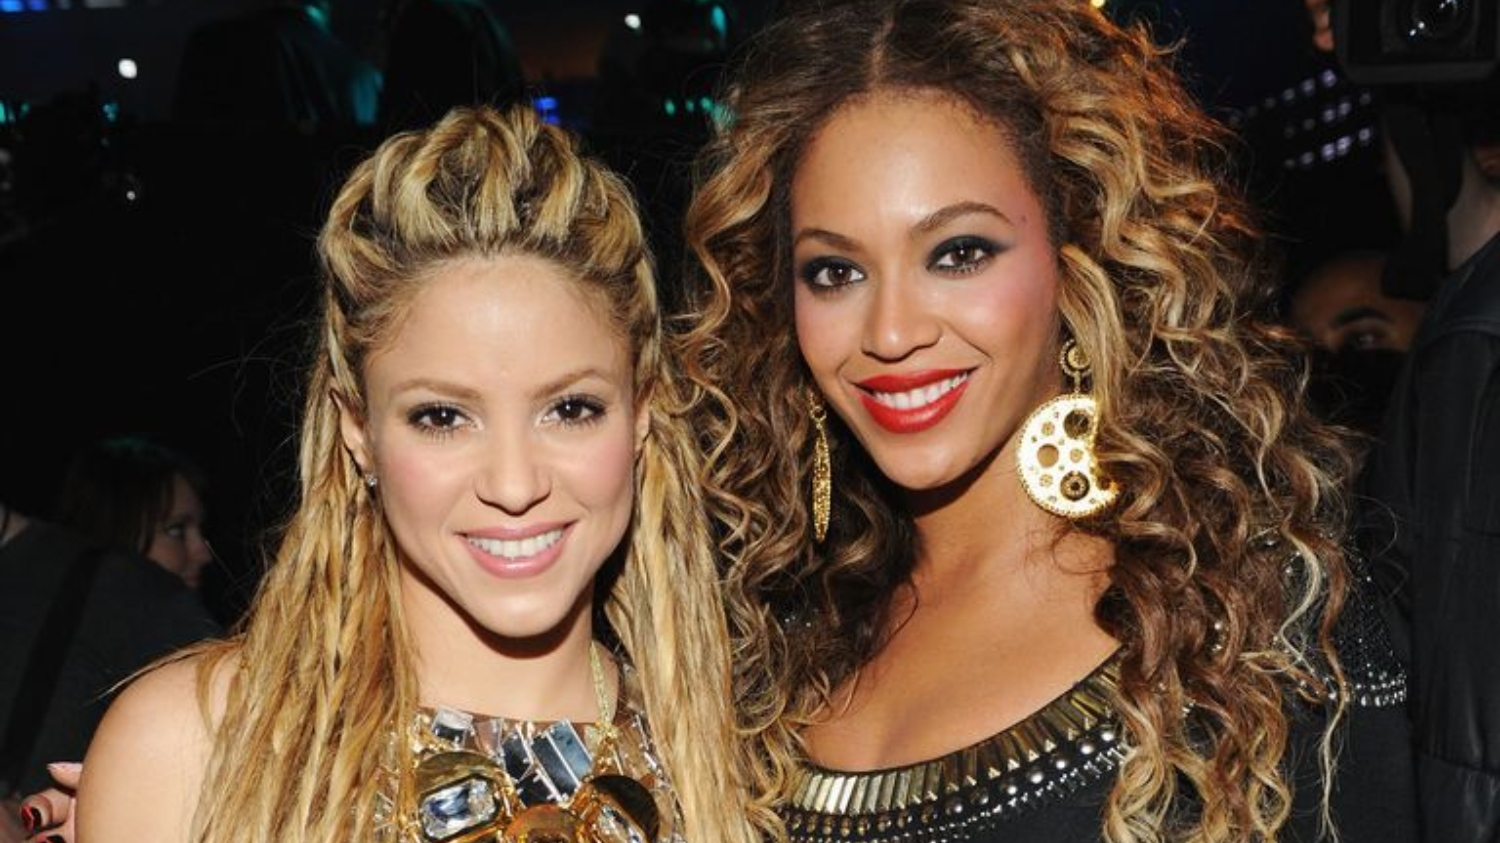 Beyoncé Attended Shakira's Birthday Bash in a Pink Party Dress